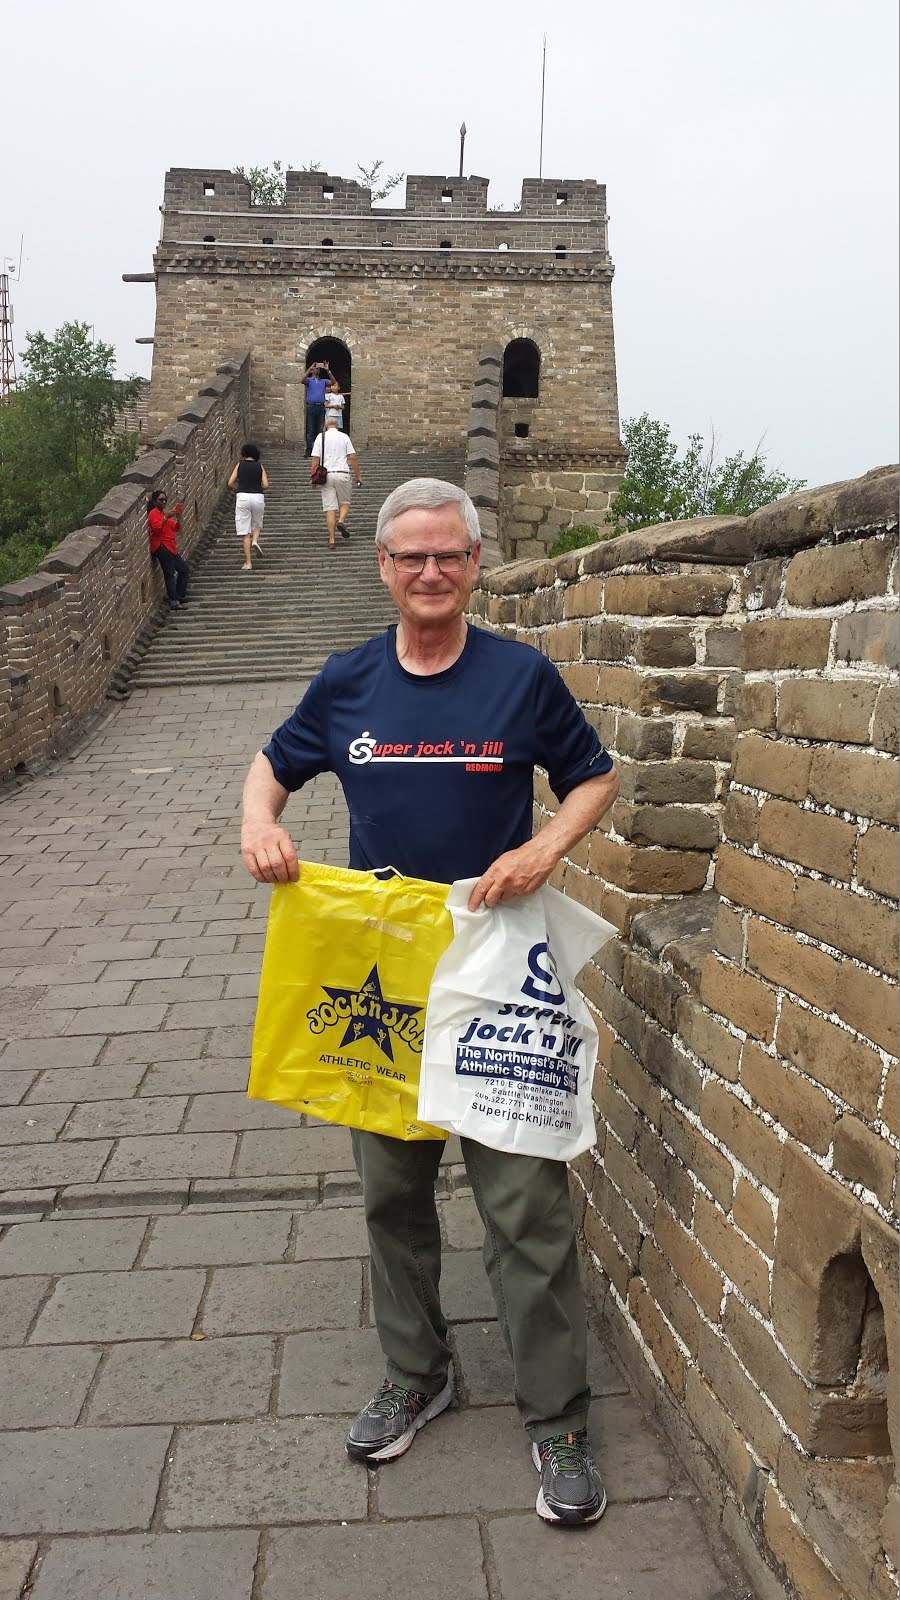 Celebrating Super Jock 'n' Jill's 40th on the Great Wall of China